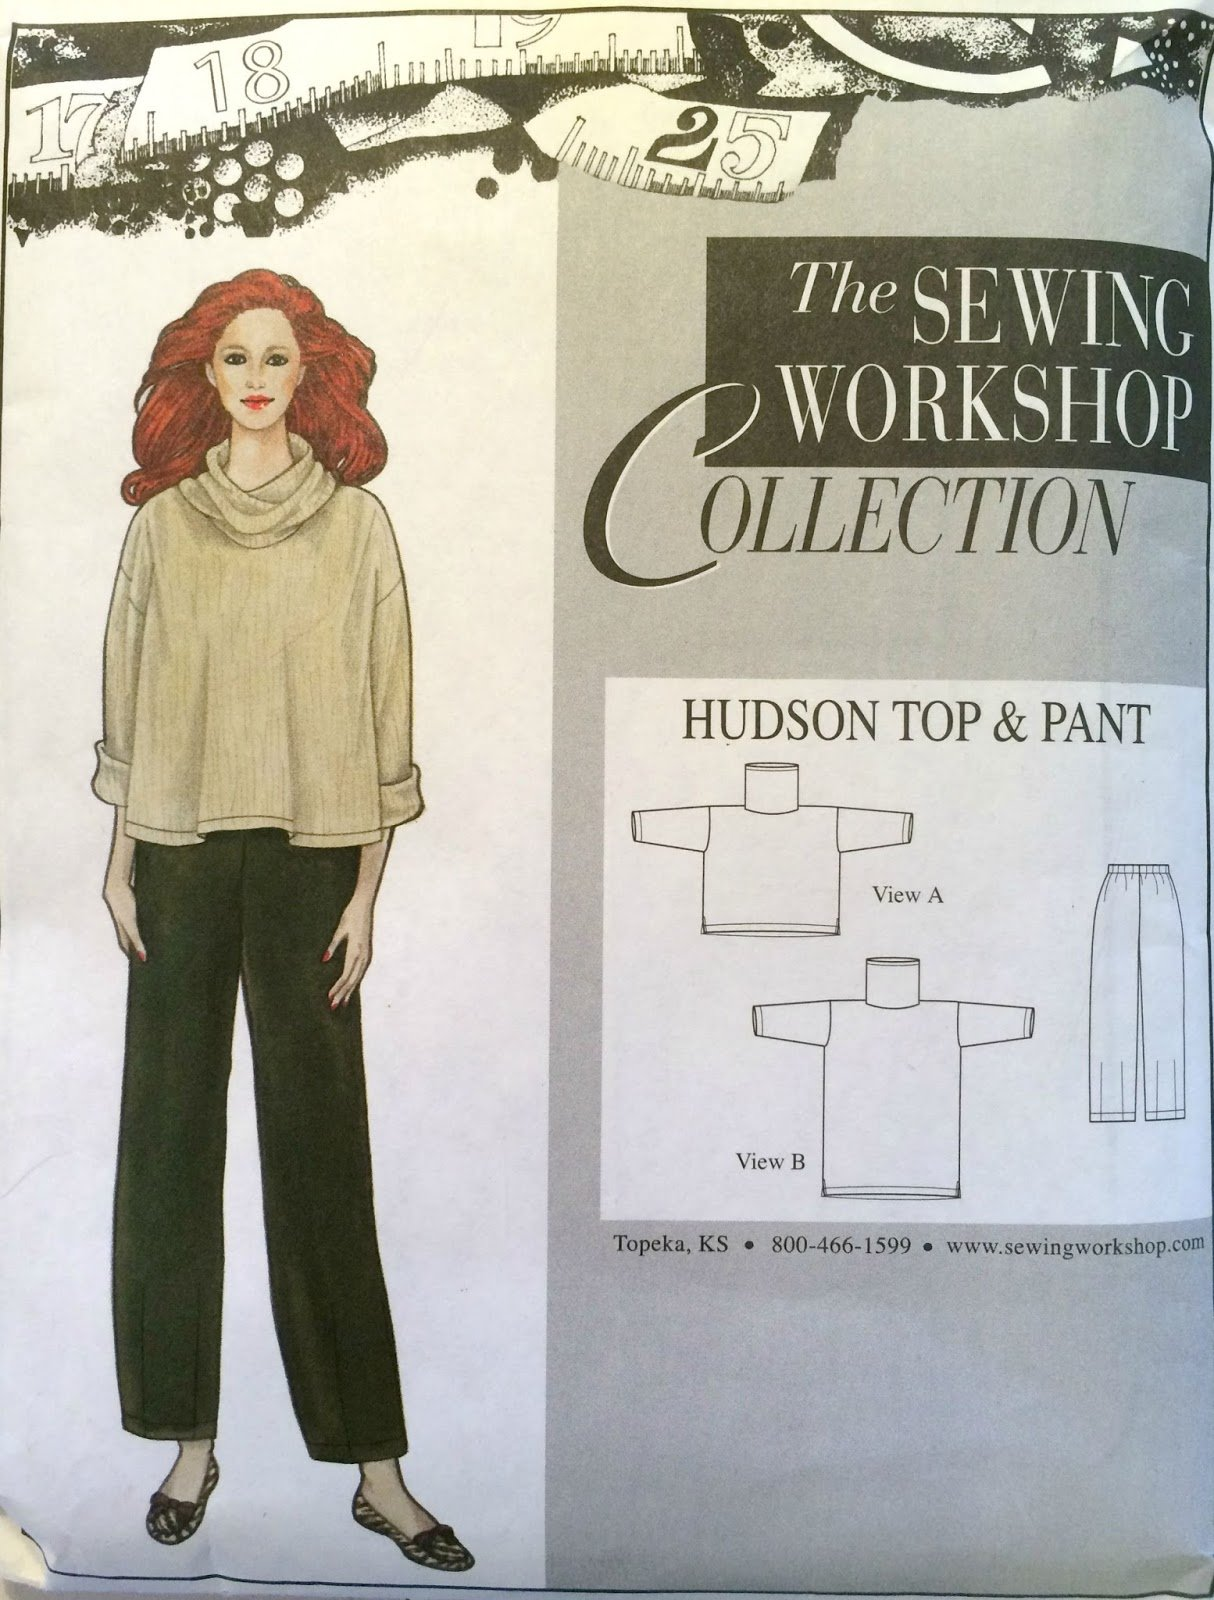 Hudson Top and Pant Pattern - Sewing Workshop